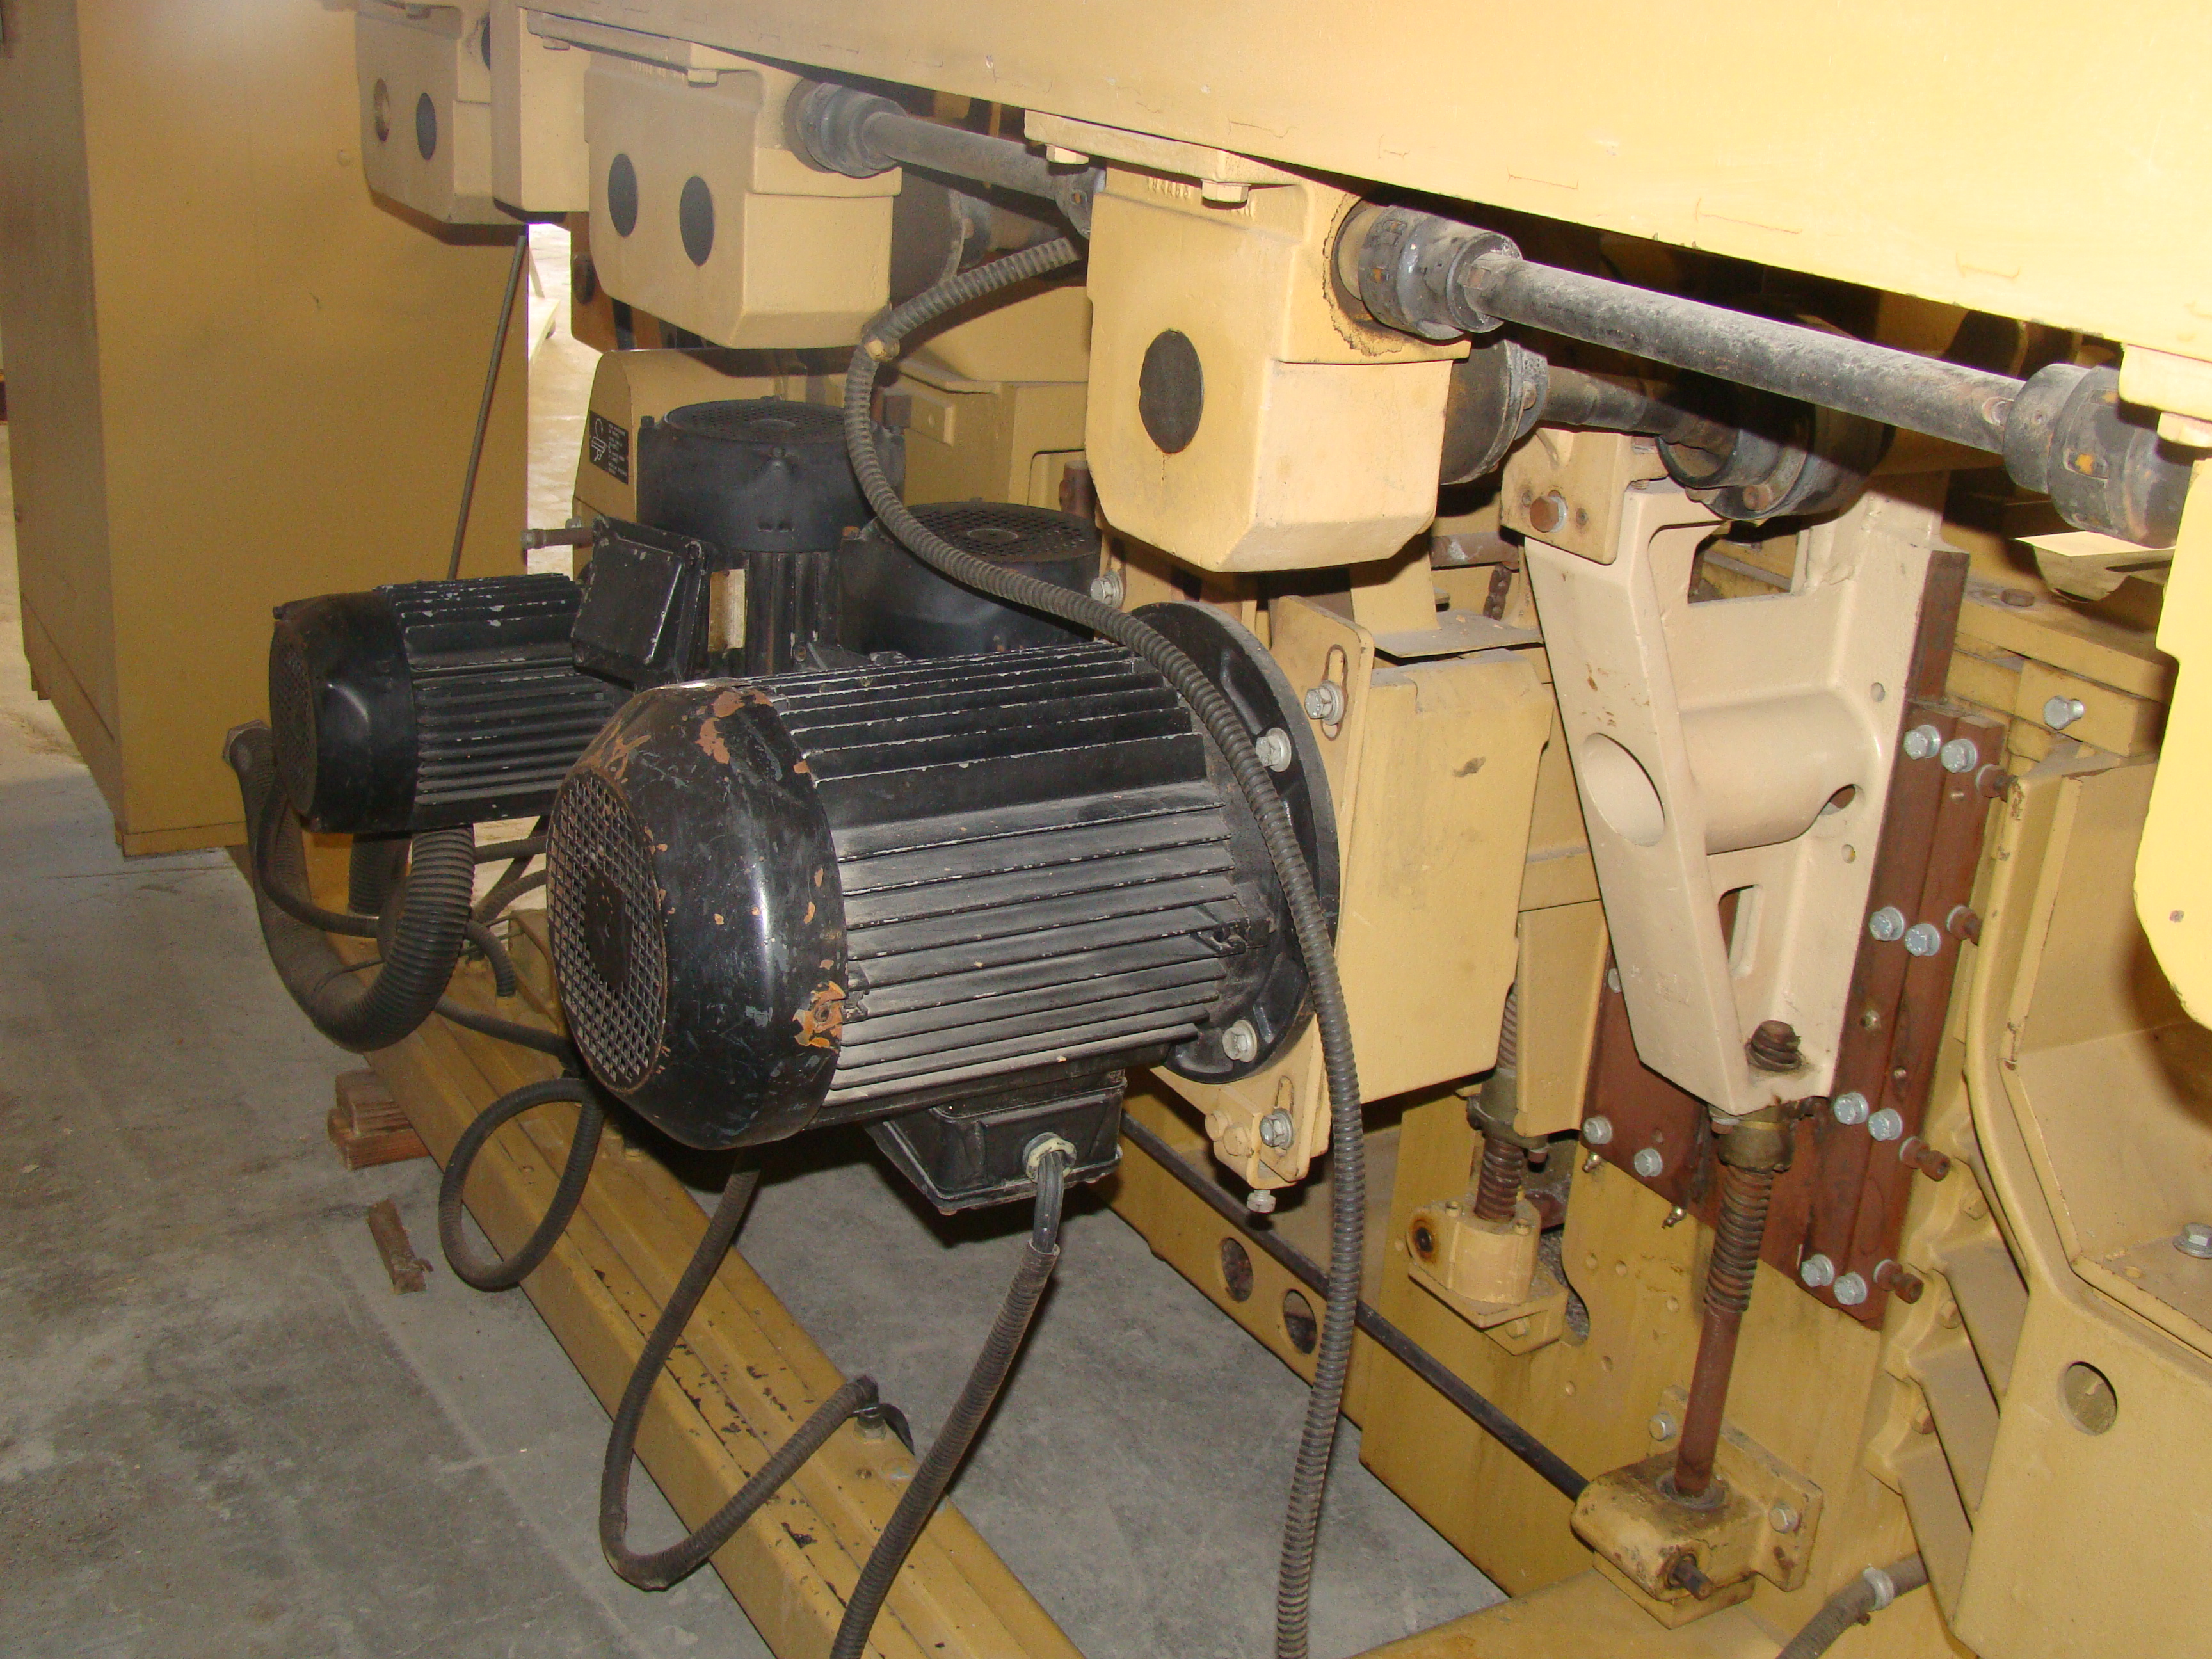 """SCMi 9"""" Wood Moulder, Model: P230 5 Head 6.6HP 220/440 Volts 3Phase - Image 4 of 14"""